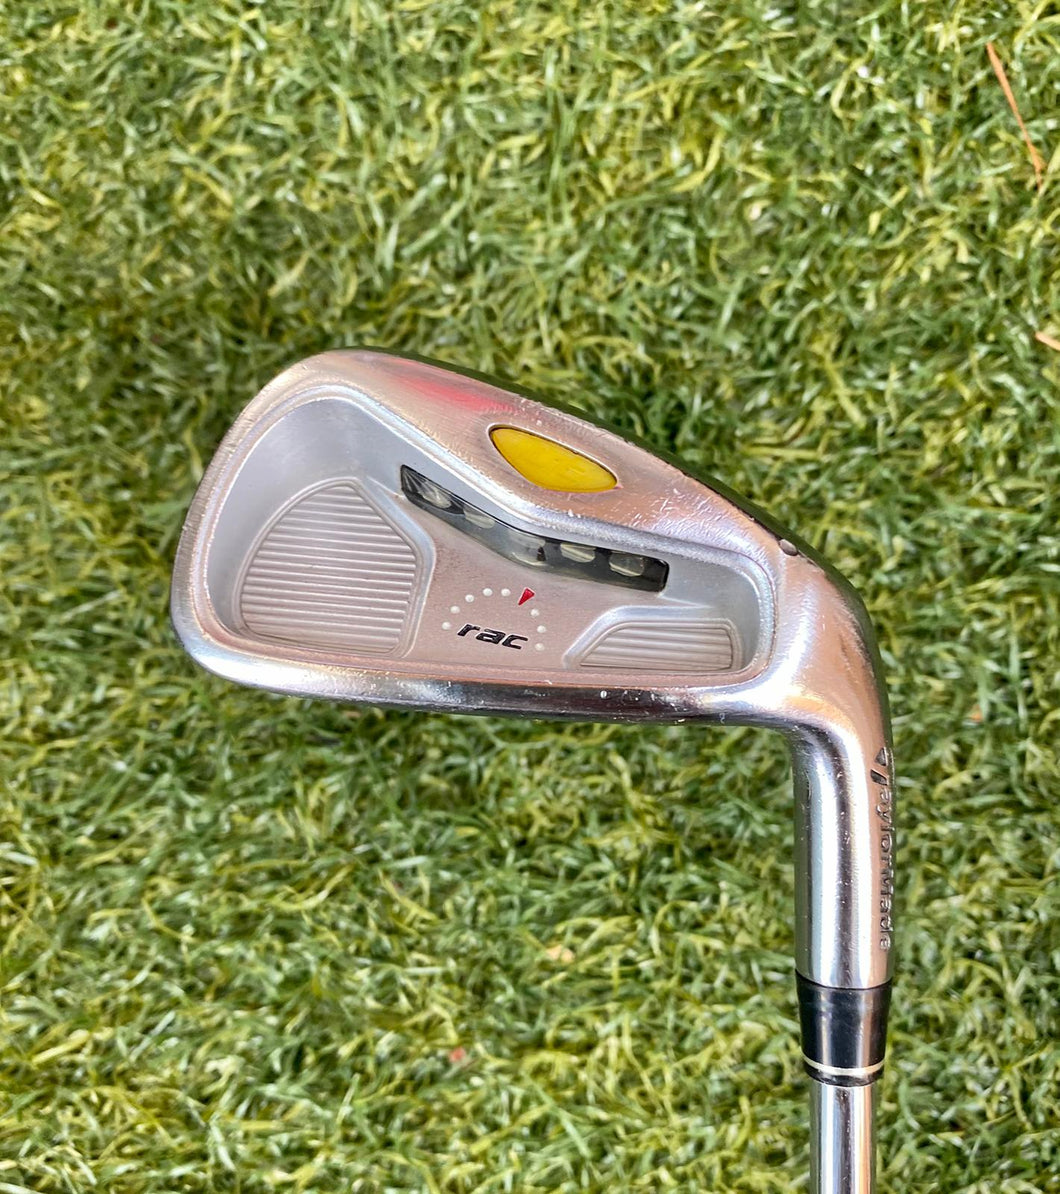 TaylorMade RAC LT 7 Single Iron, RH, TaylorMade T-Step Professional Stiff Steel Shaft- Good Condition